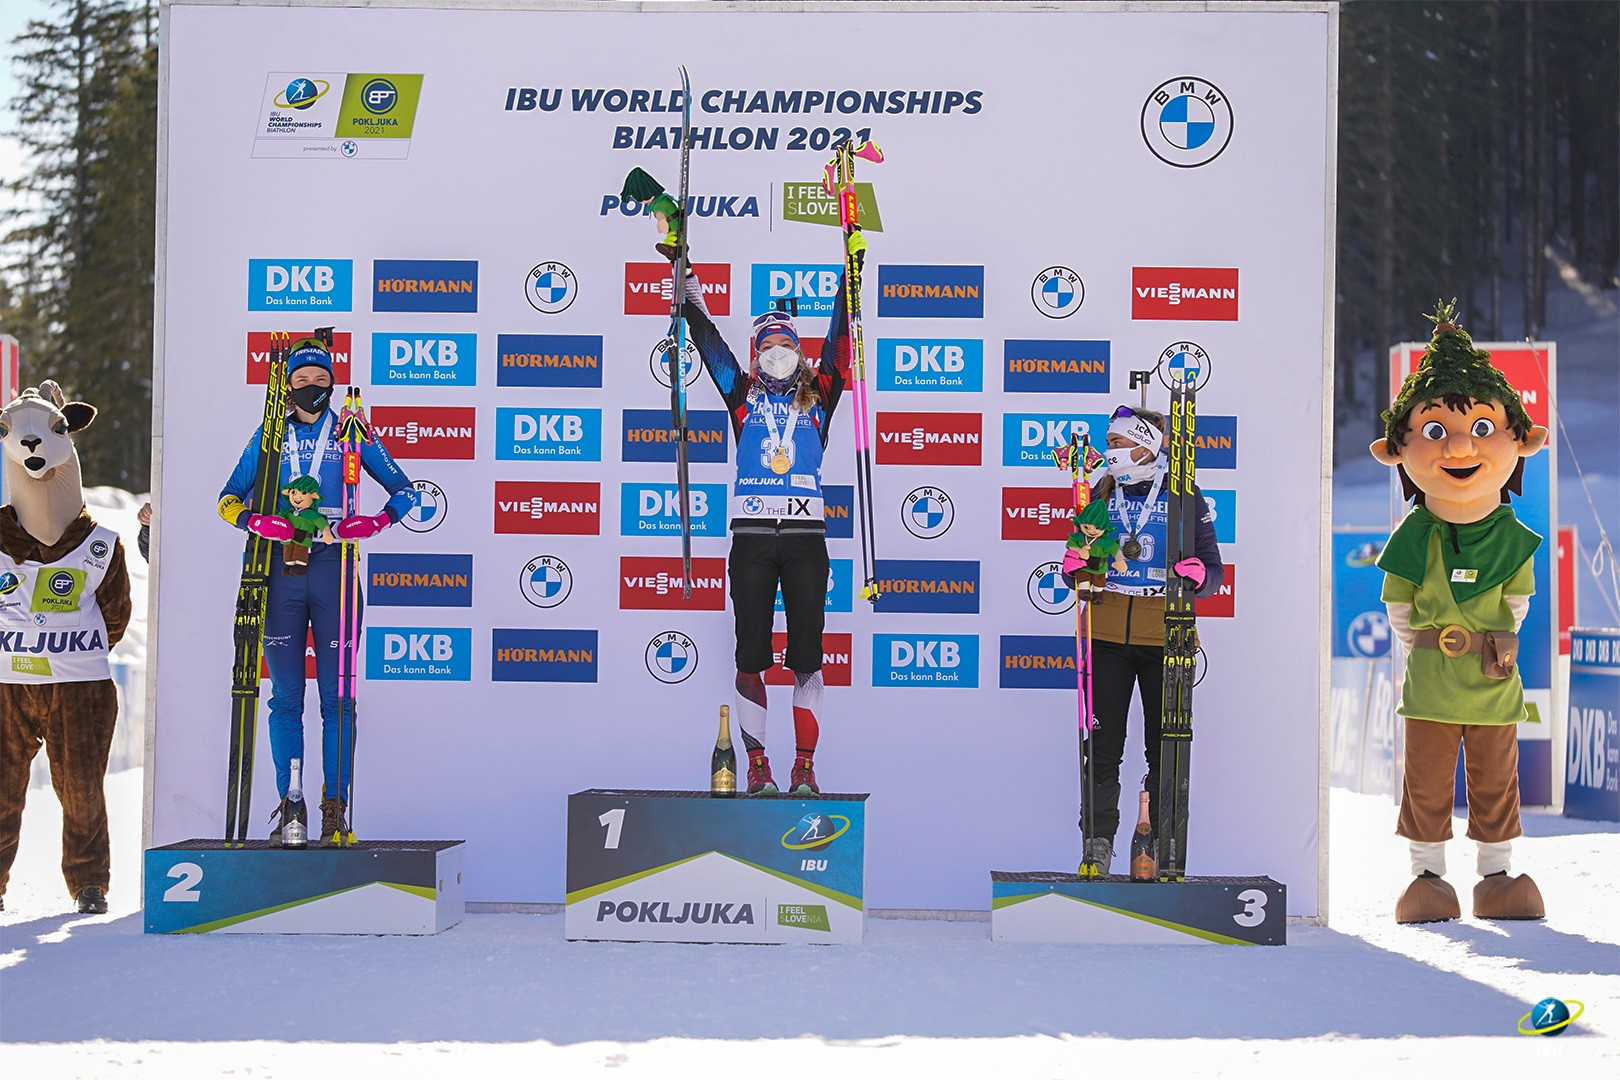 Dead-eye Davidová shoots cleanly to clinch individual gold at IBU World Championships